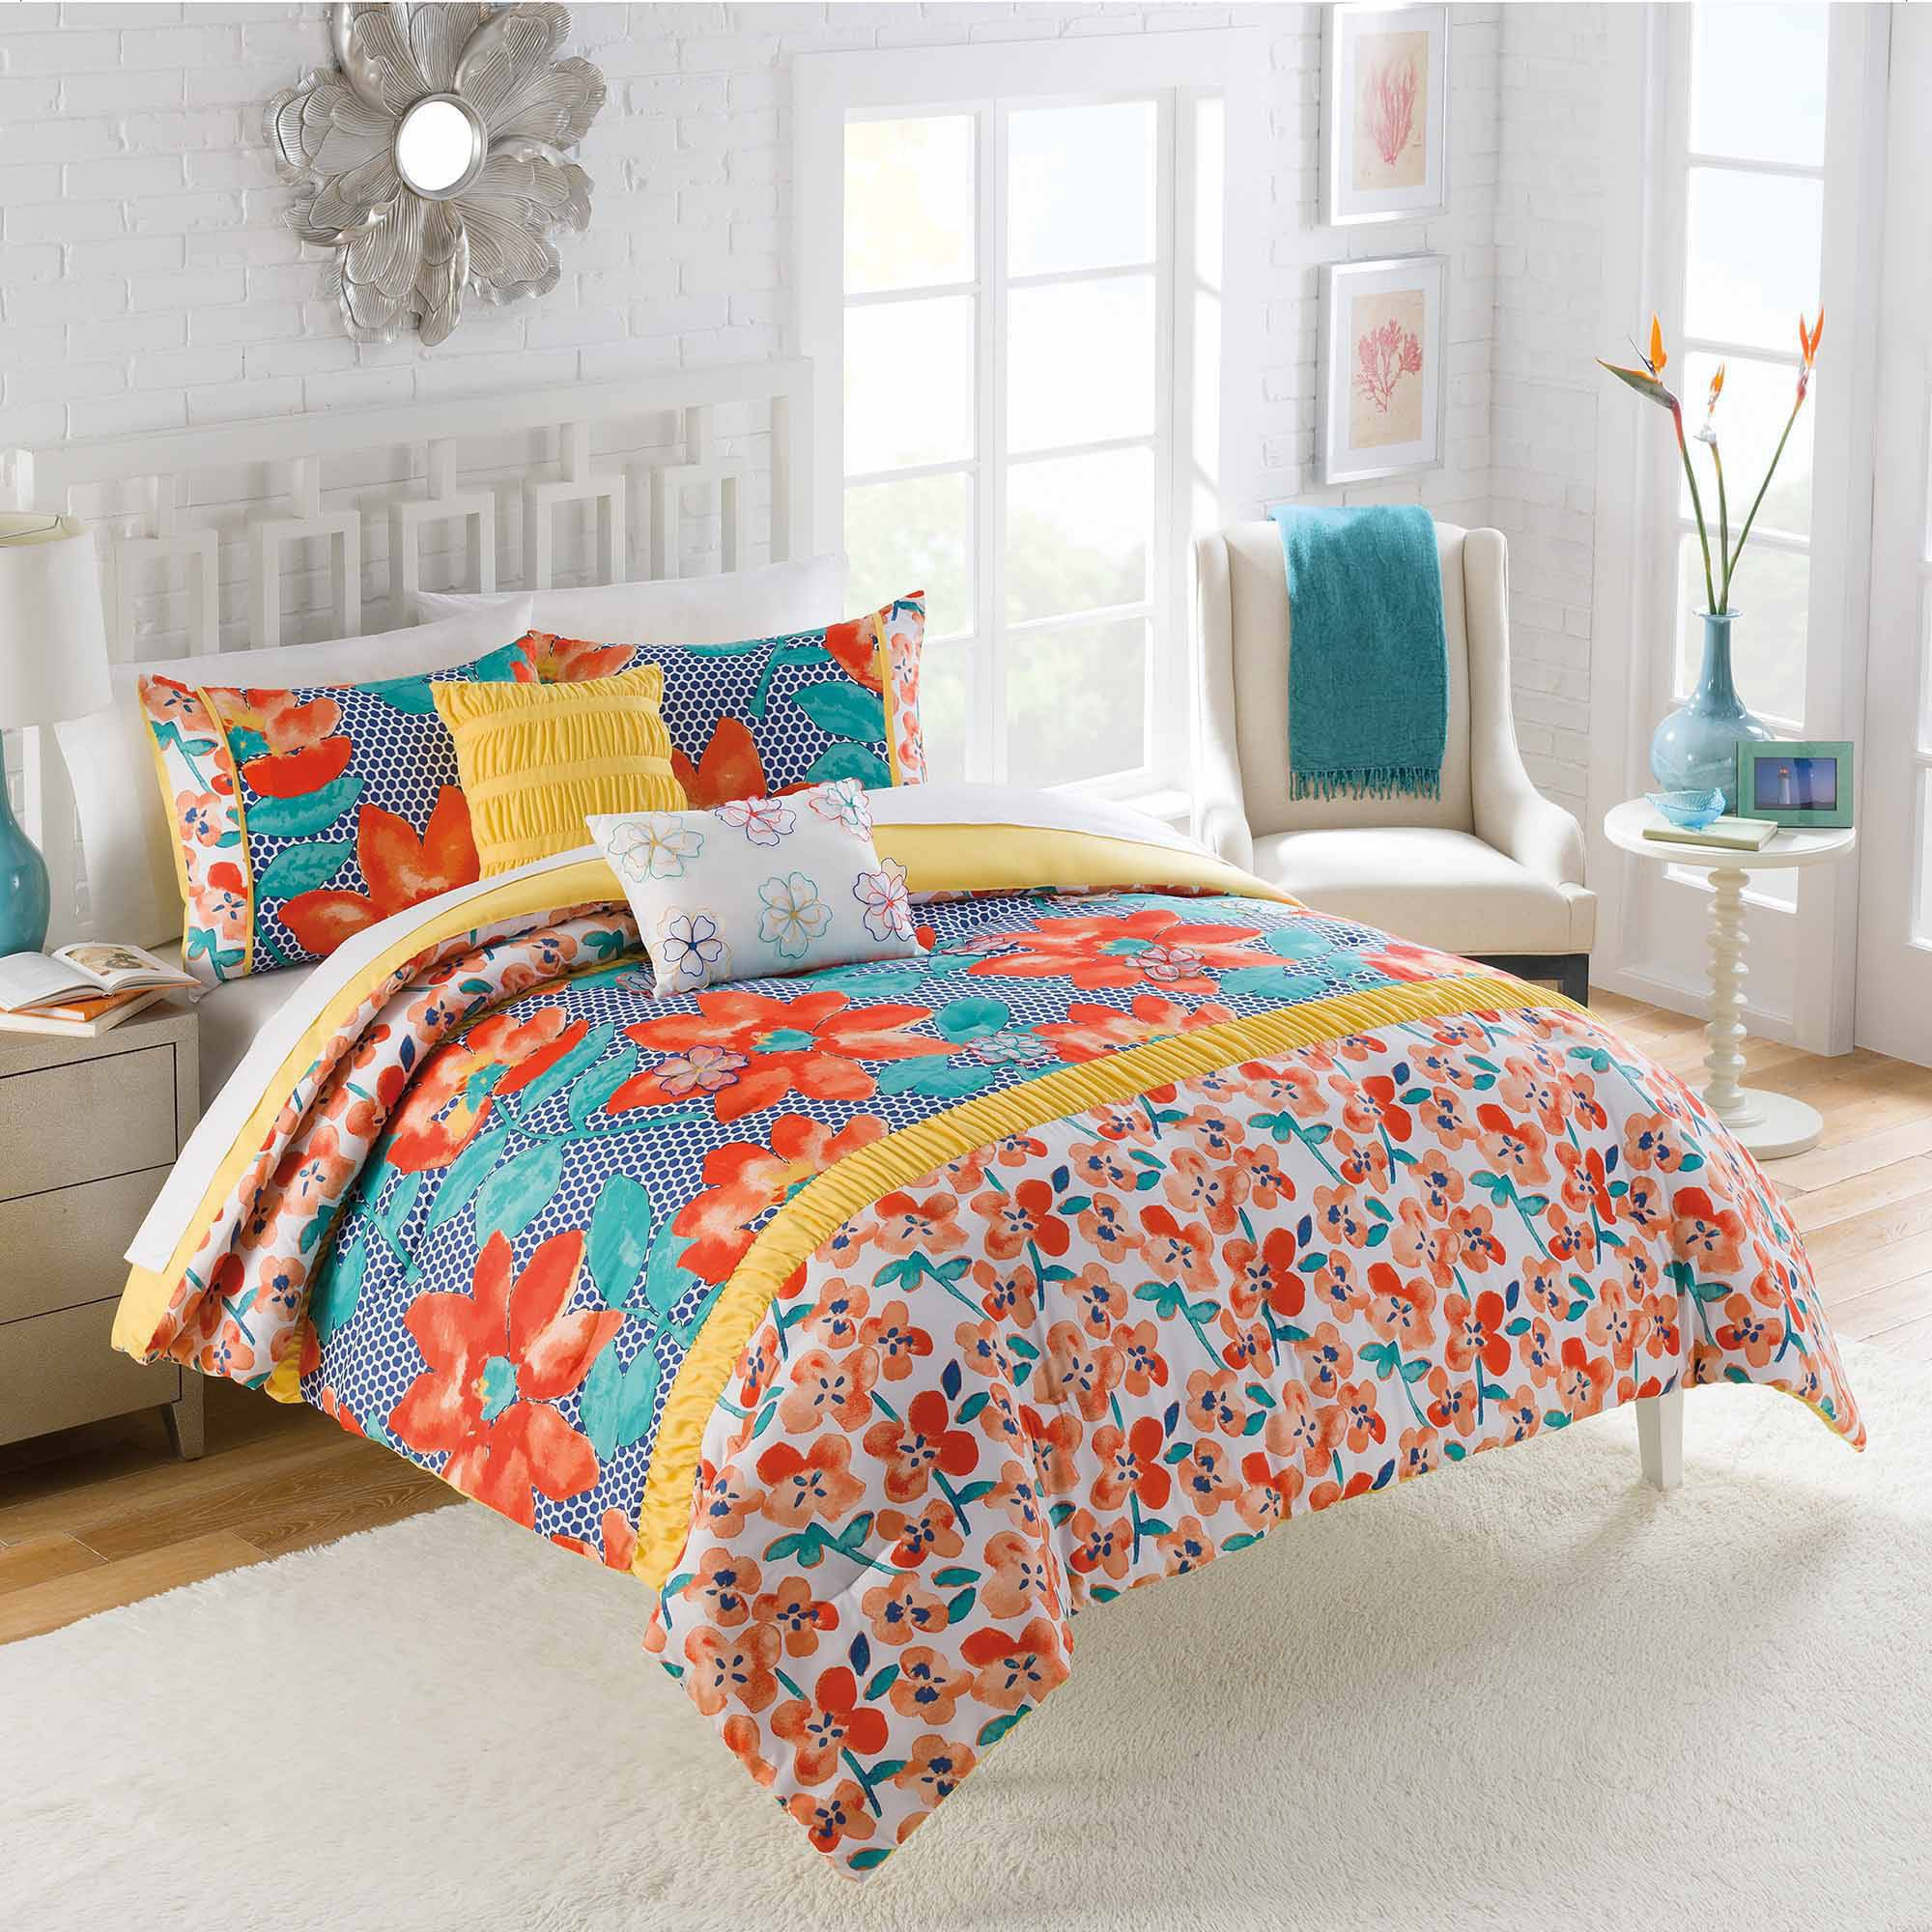 Vue Coachella Bedding Comforter Set